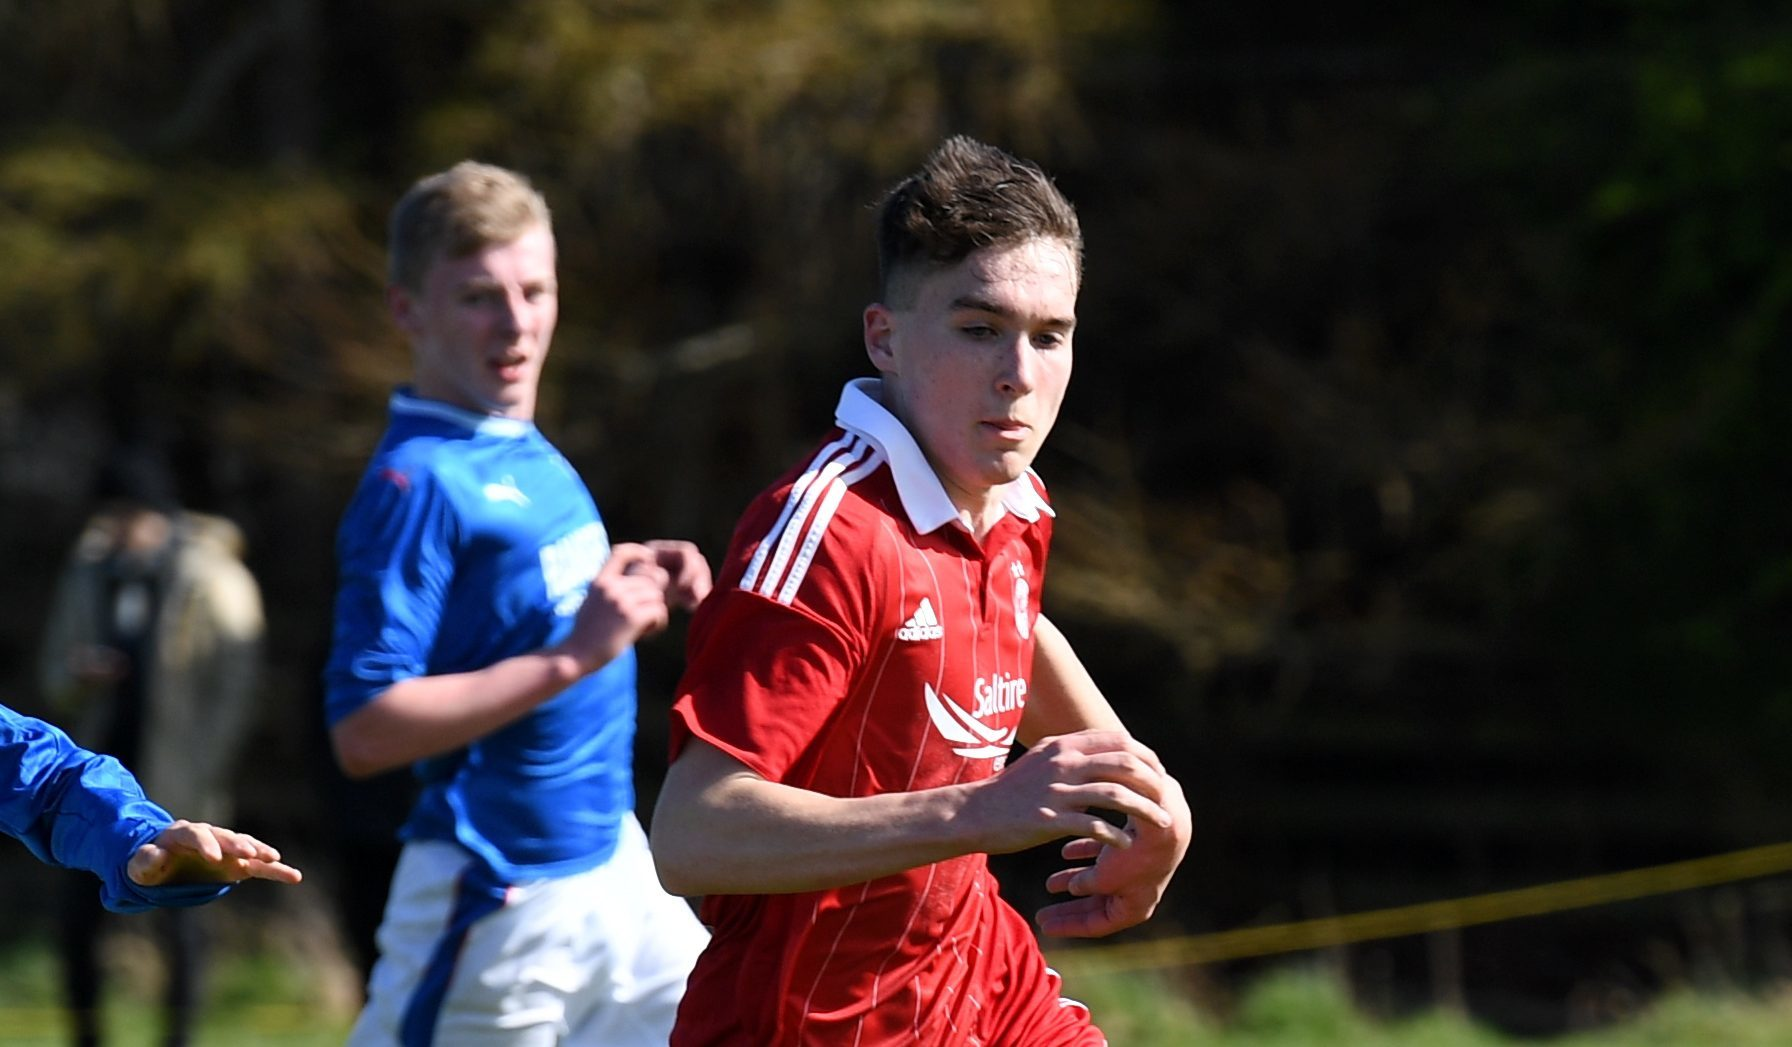 Aberdeen's Jevan Anderson in action during the 3-3 draw with Rangers in the Scottish Youth League clash at Balgownie. (Picture by Kath Flannery)